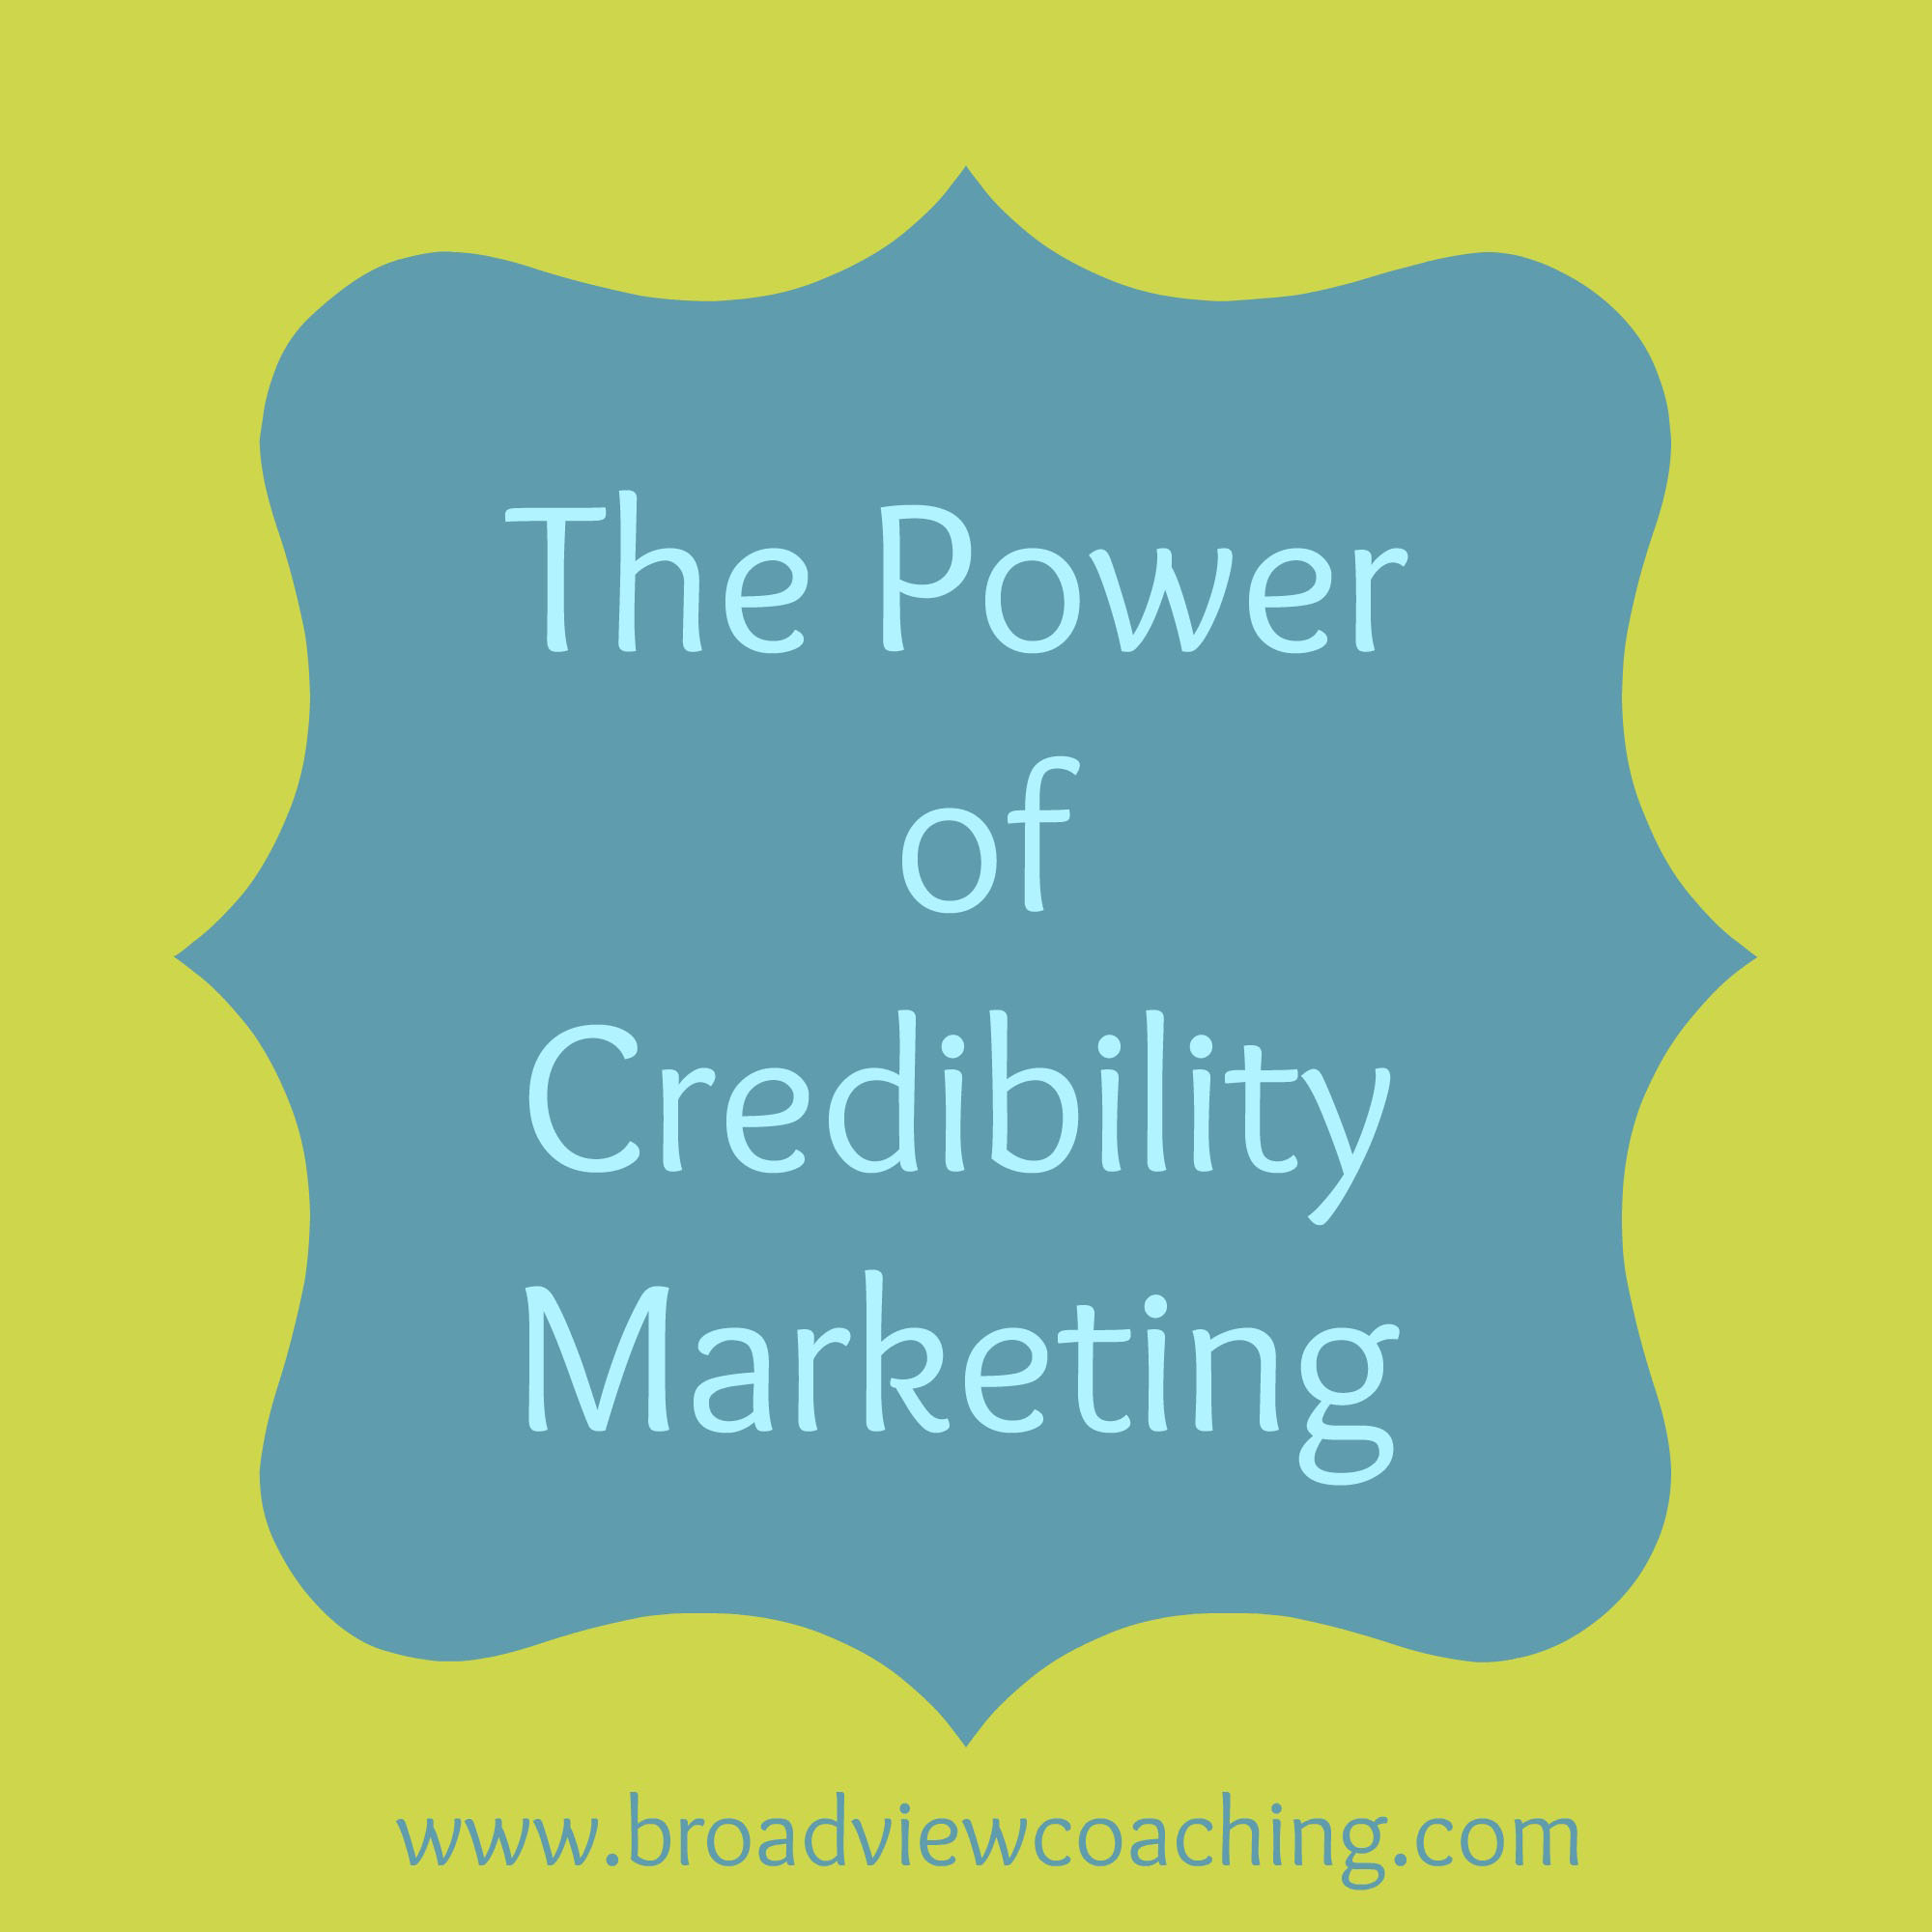 Power of Credibility Marketing